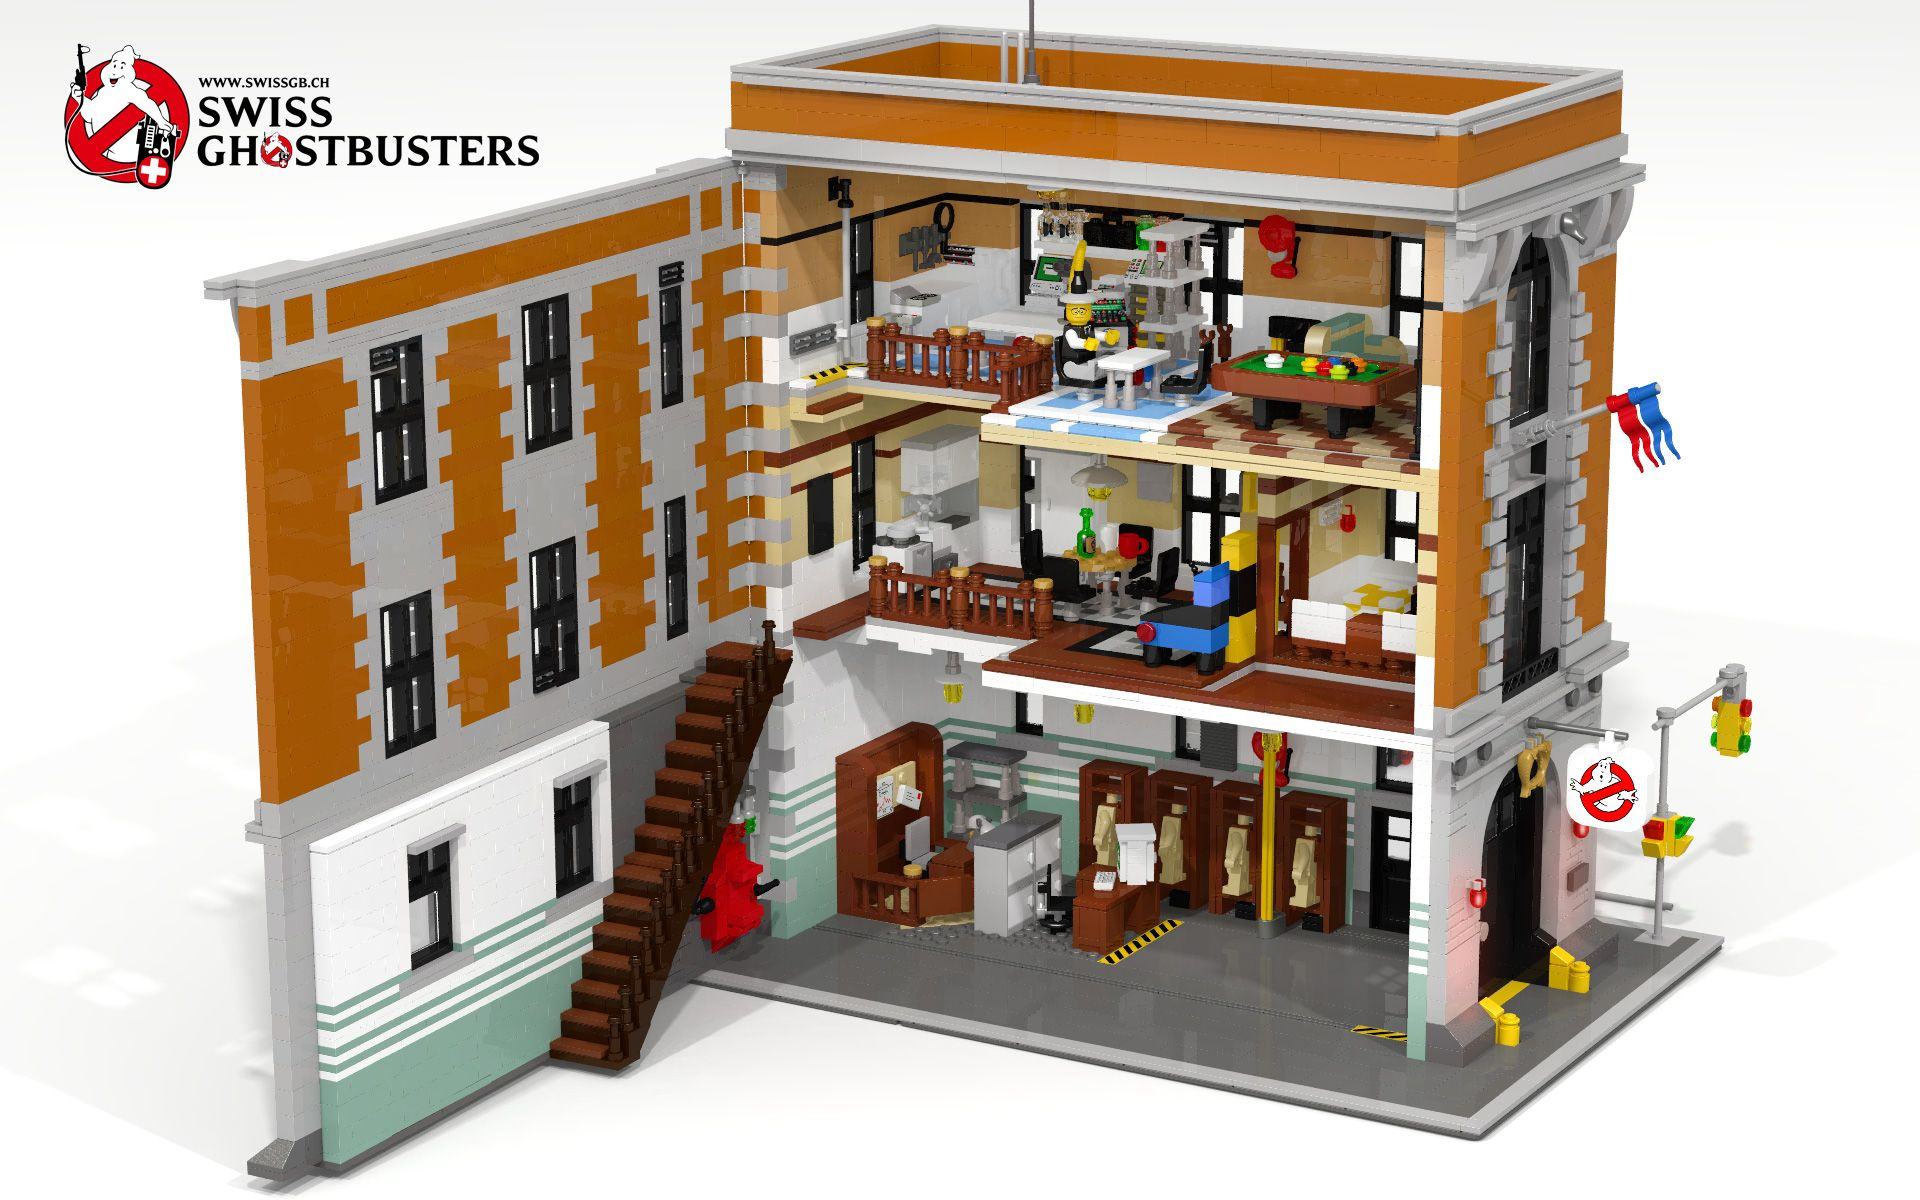 Lego Ghostbusters Hq Custom Moc With Lights Lego Licensed Lego Lego Modular Ghostbusters